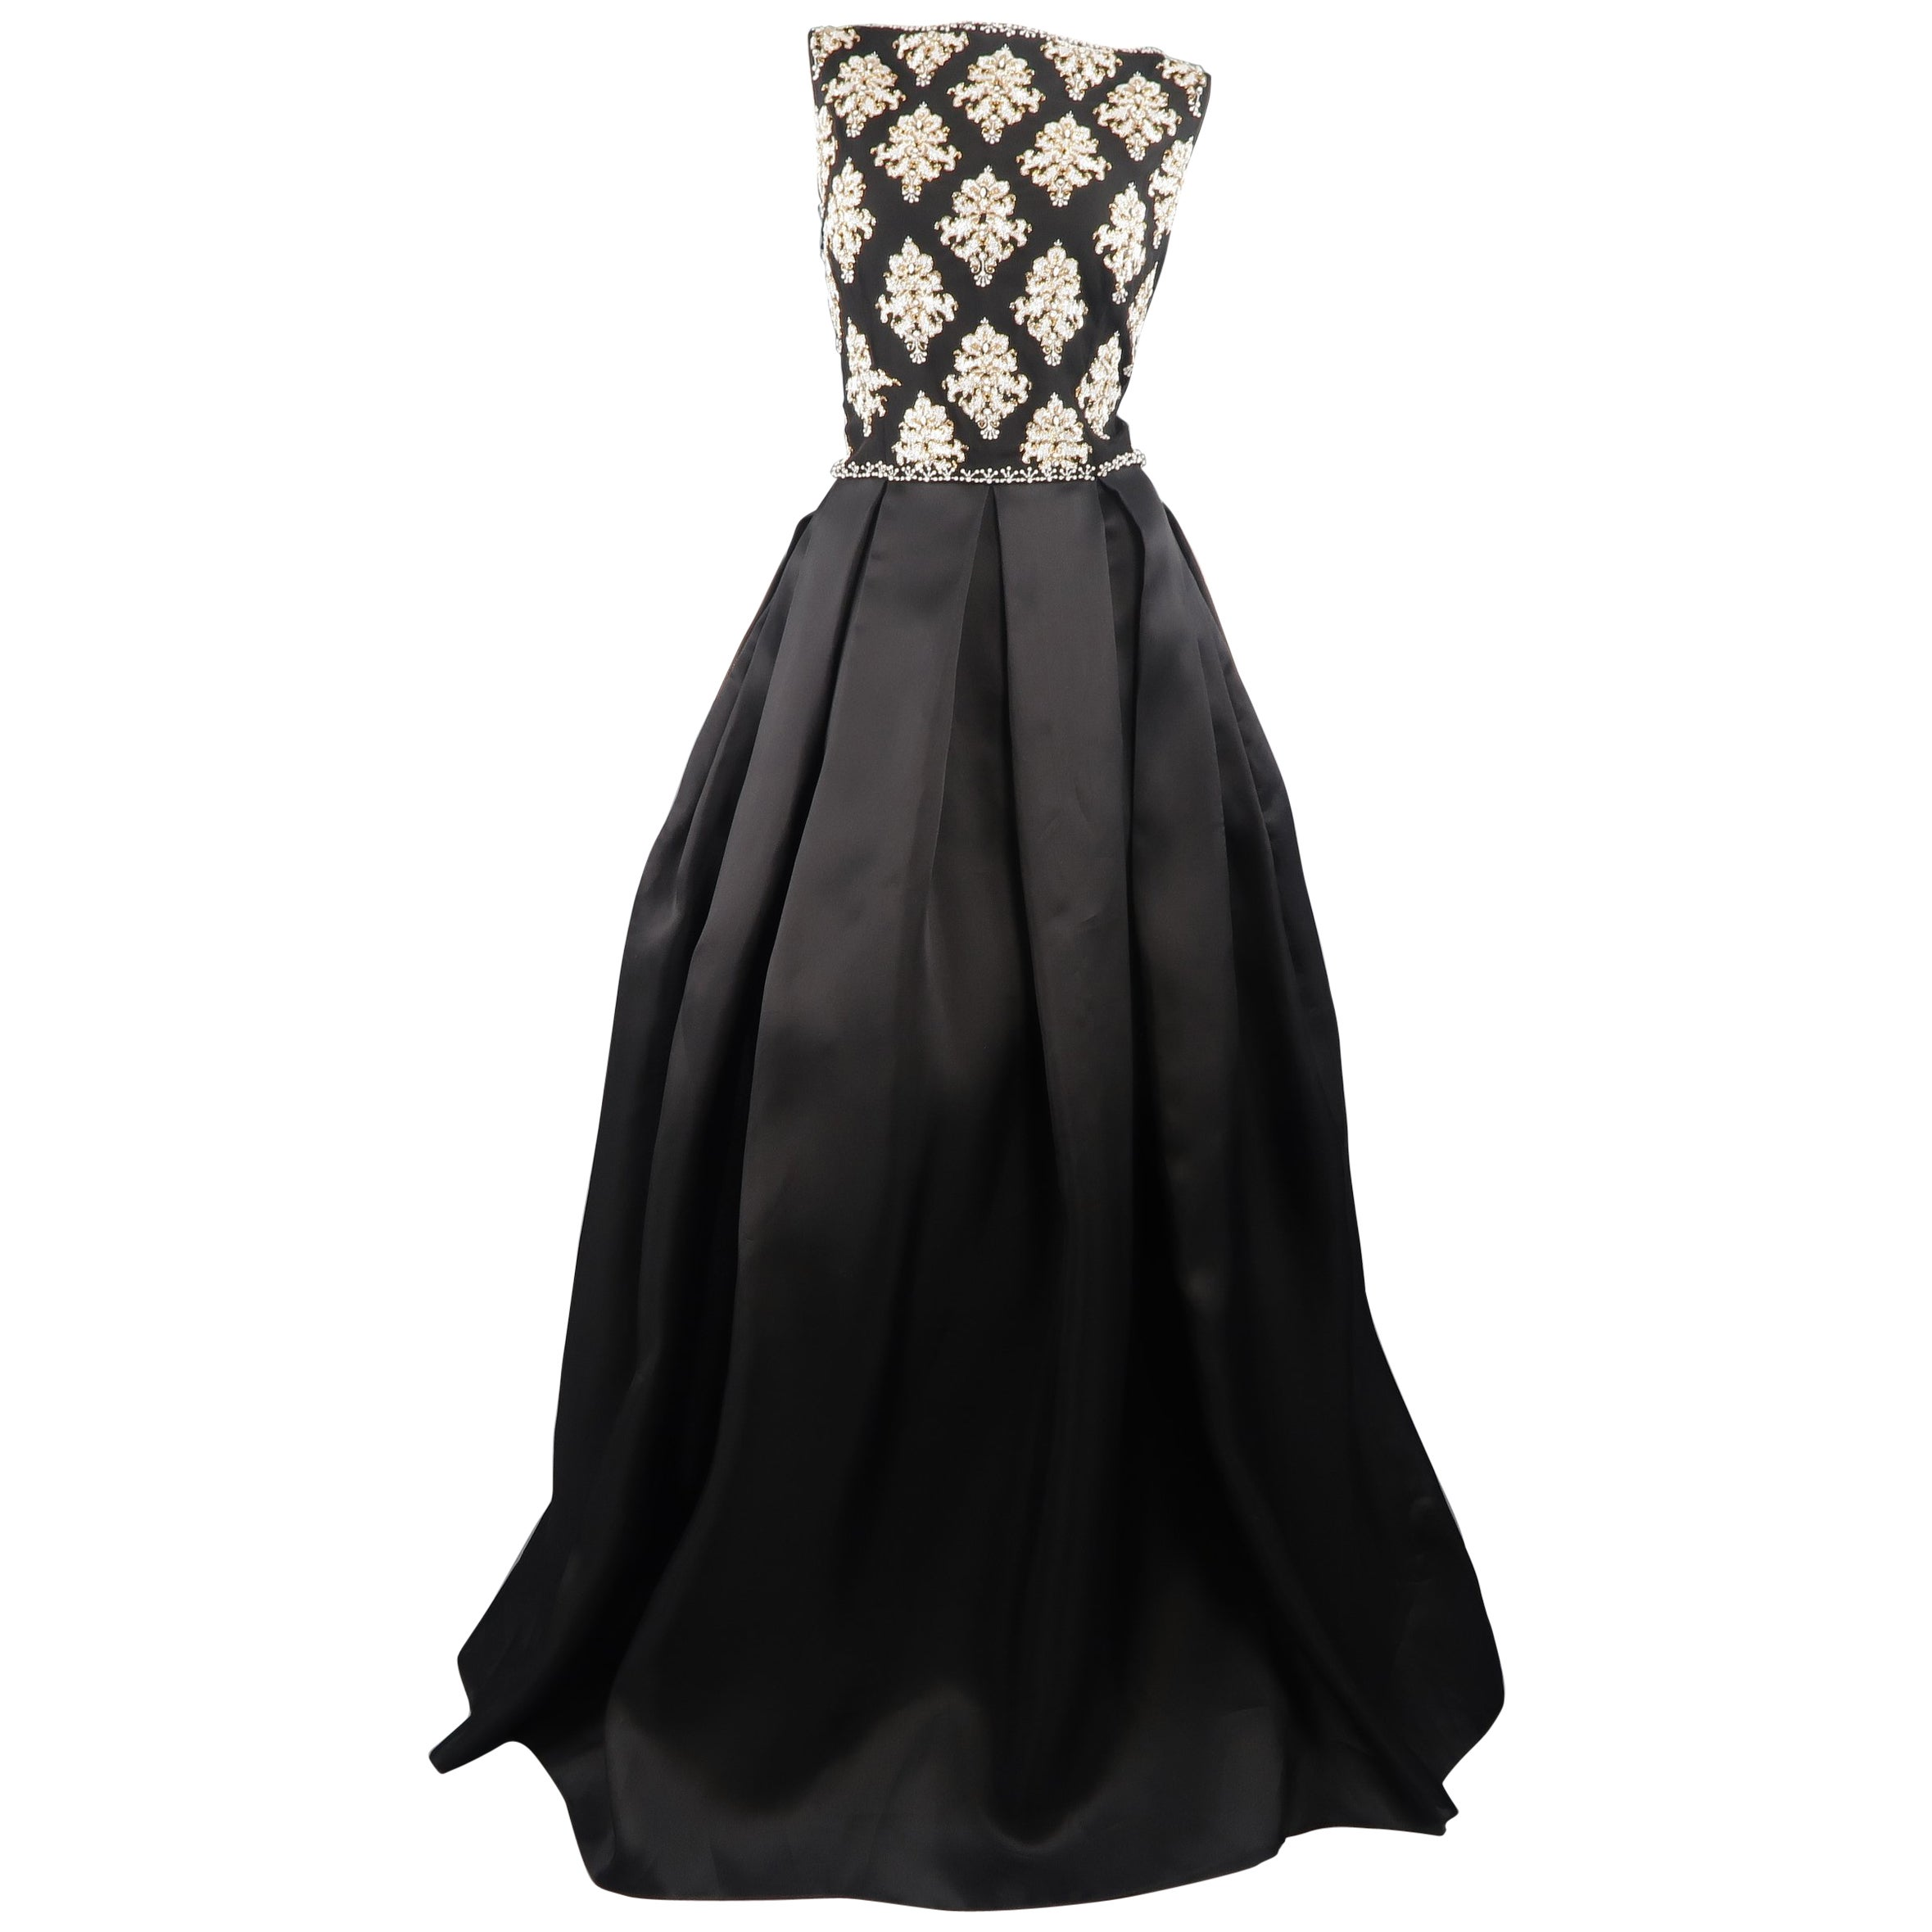 bf4b58f9c1f Naeem Khan Black Silk Beaded Bodice Pleated Ball Skirt Gown   Dress at  1stdibs